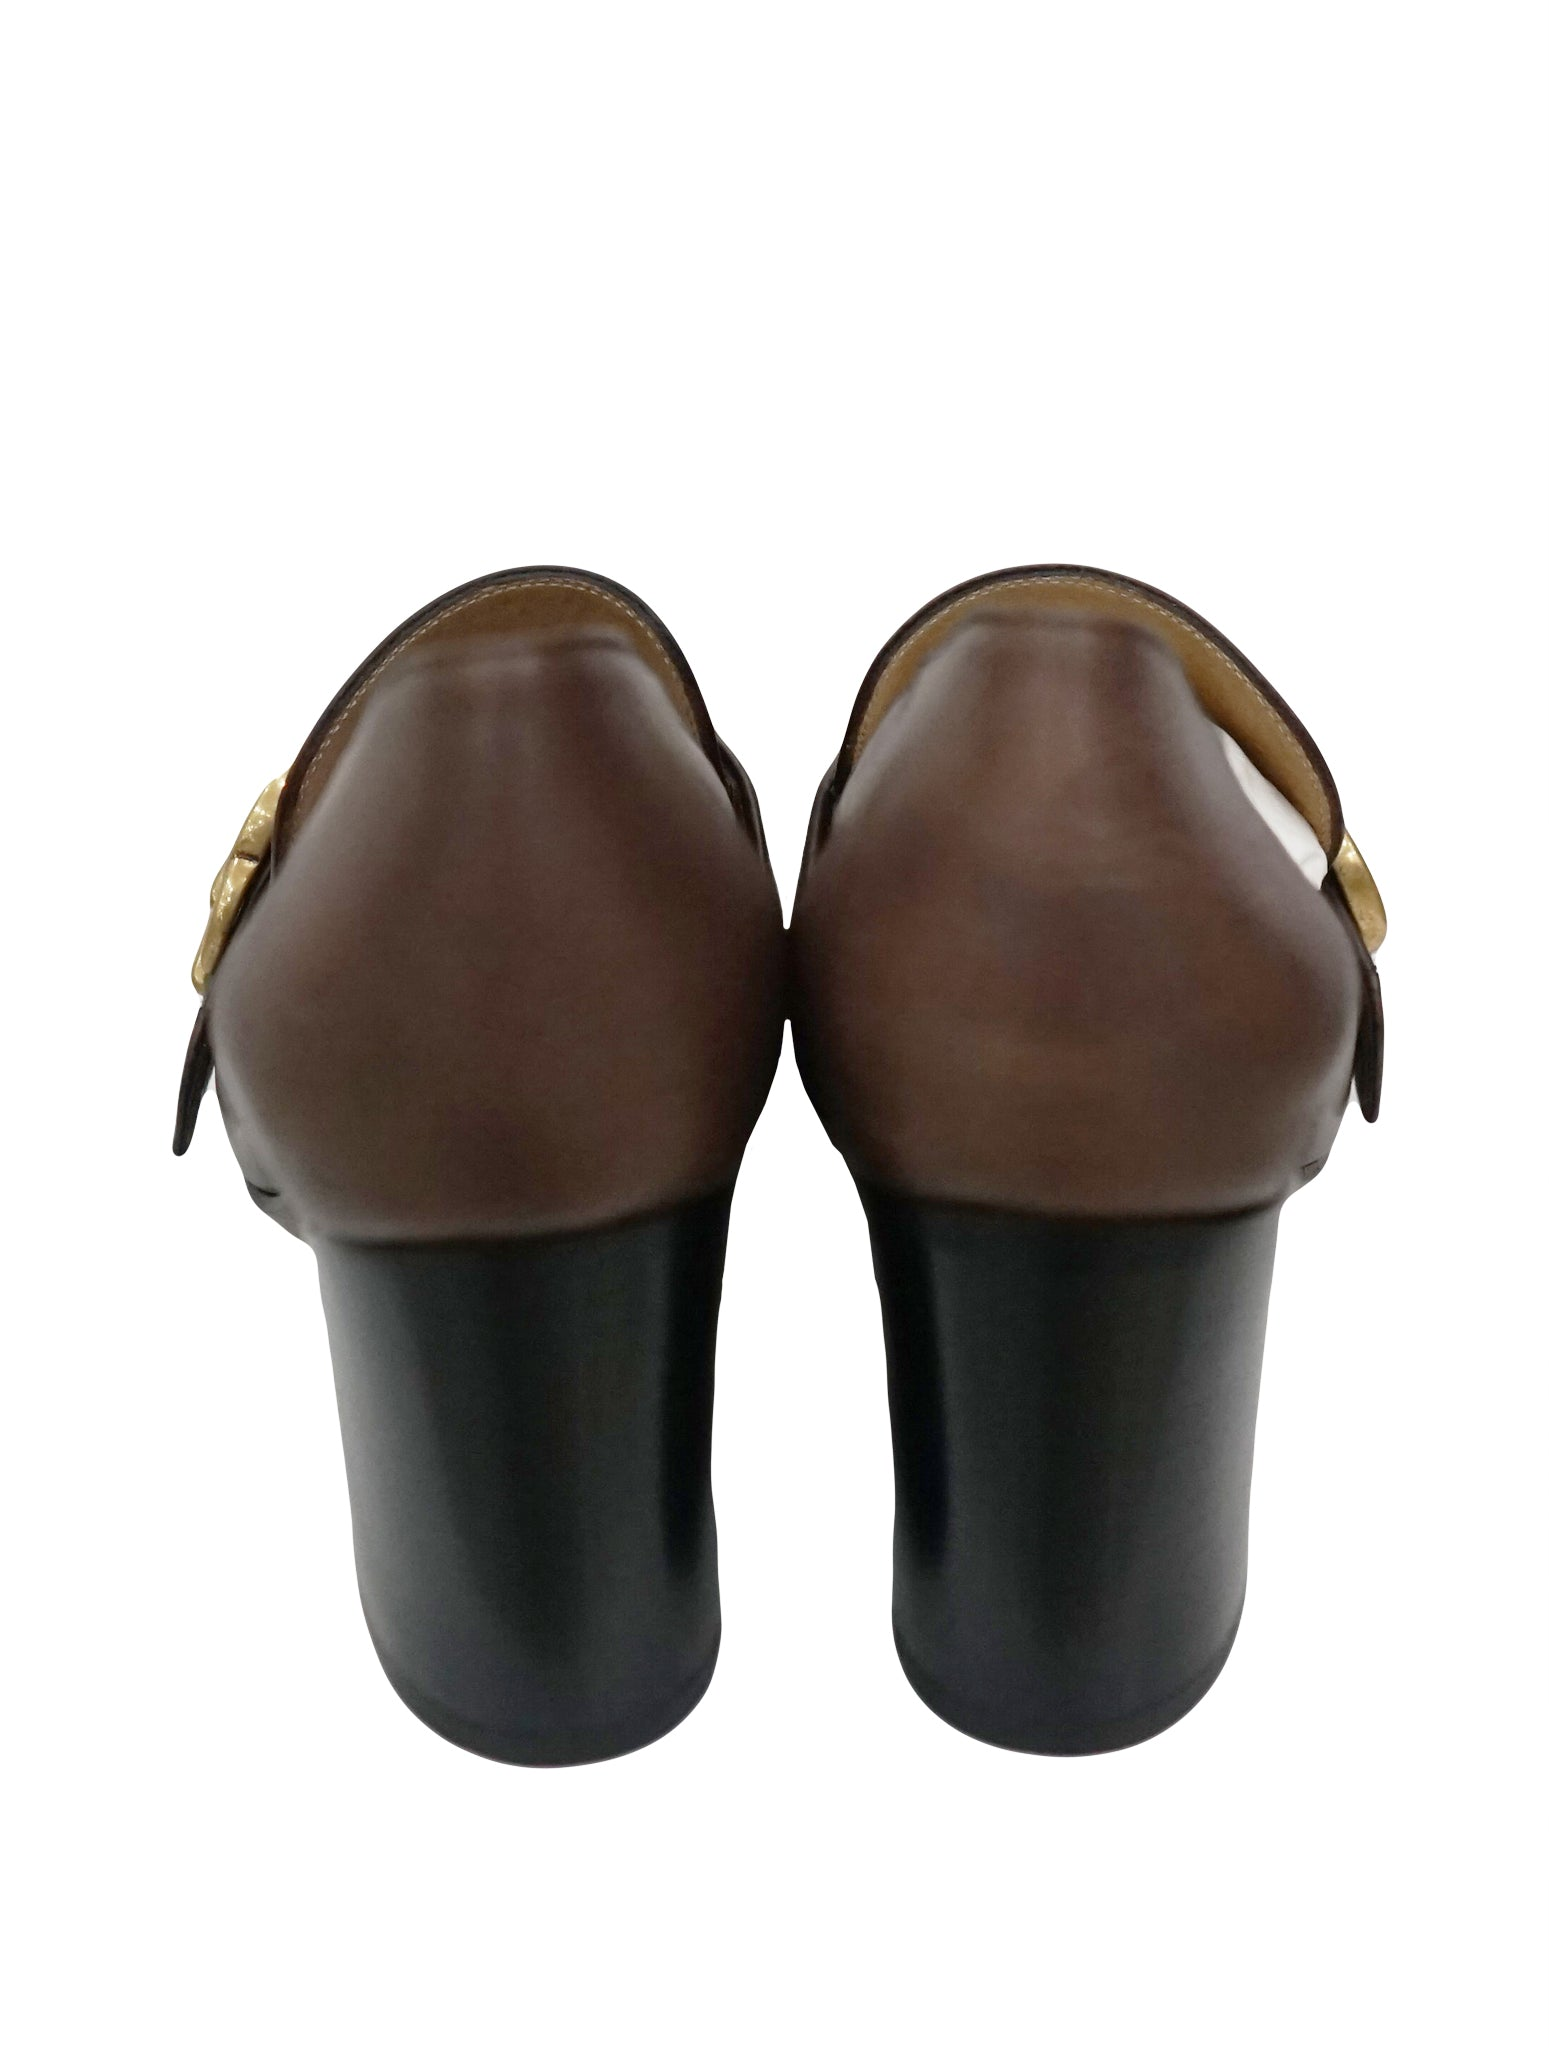 LEATHER MID-HEEL LOAFER SHOES